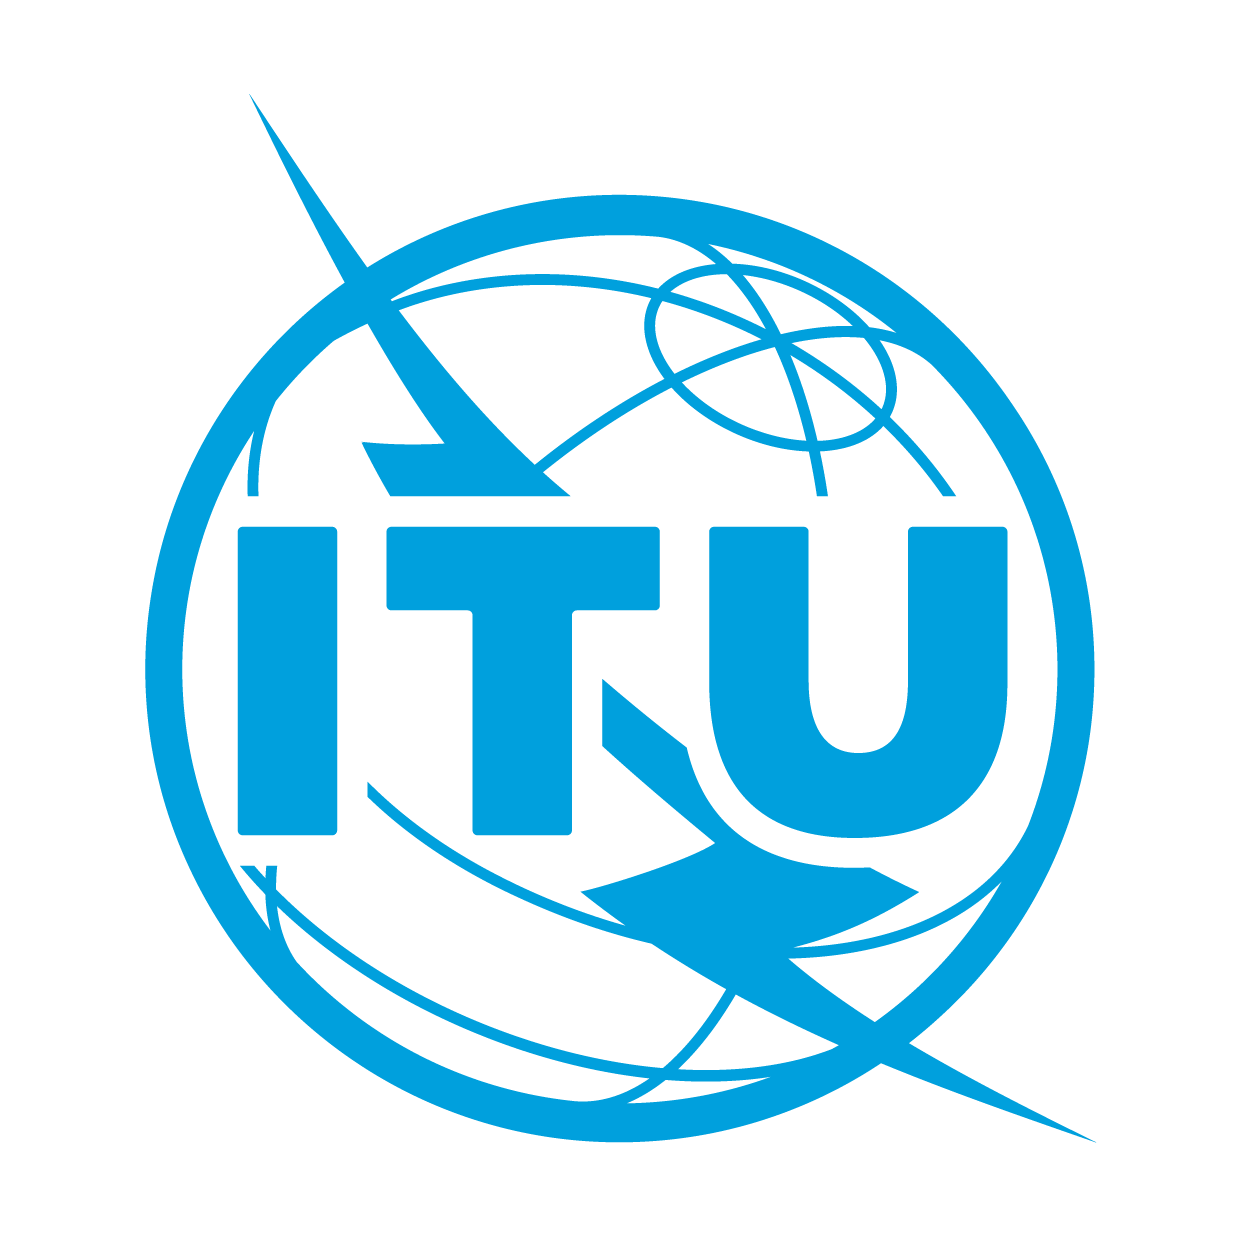 logo for International Telecommunication Union